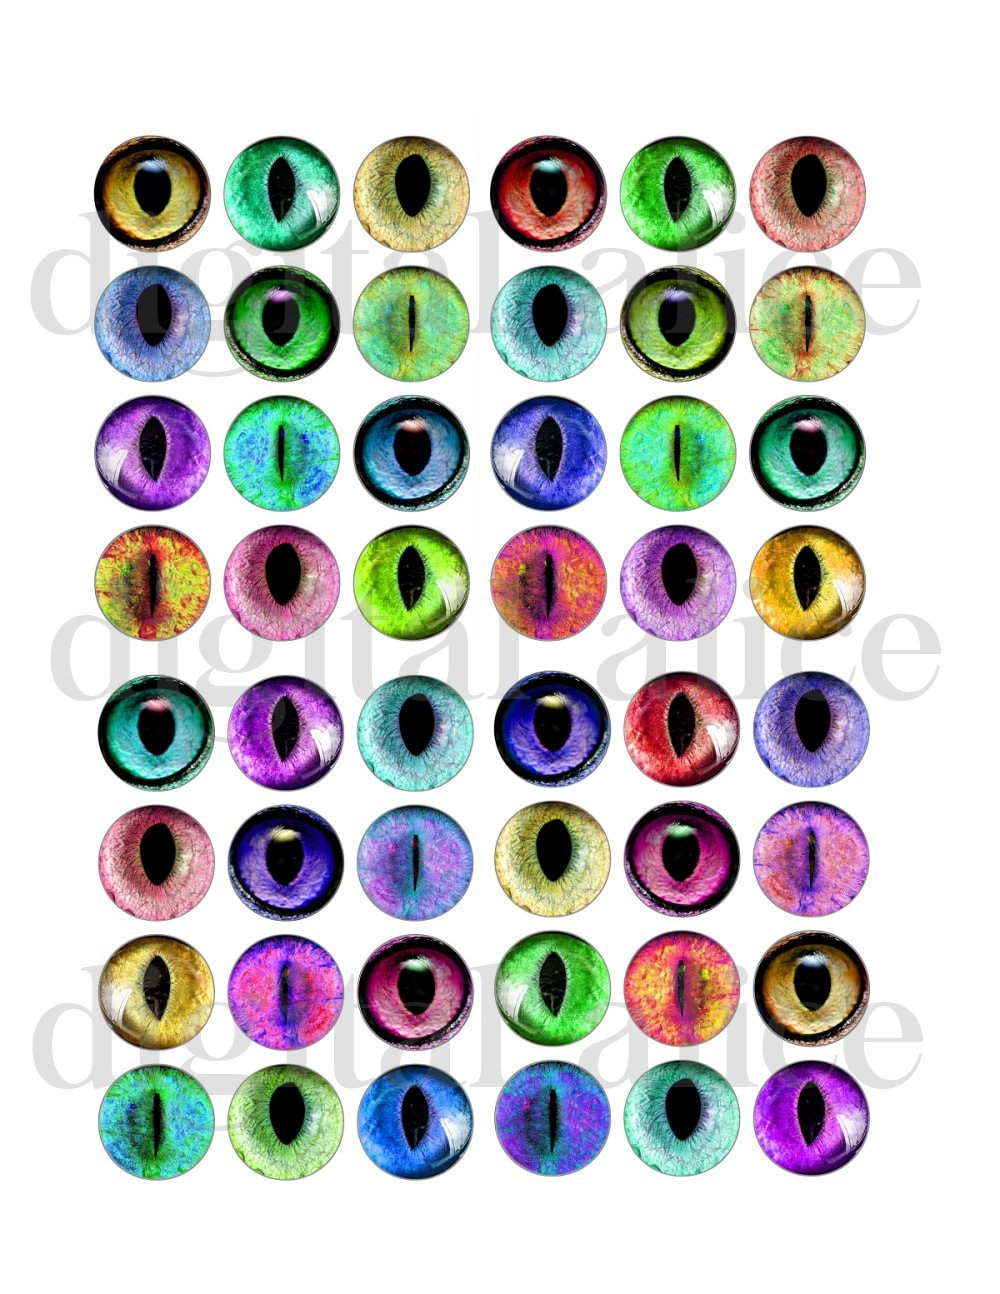 photo about Eyes Printable referred to as CAT EYES Printable Craft Circles - Cats Eye, Animal Eye Visuals - Immediate Down load Electronic Printable Bottlecaps, Jewellery,Paper Crafts